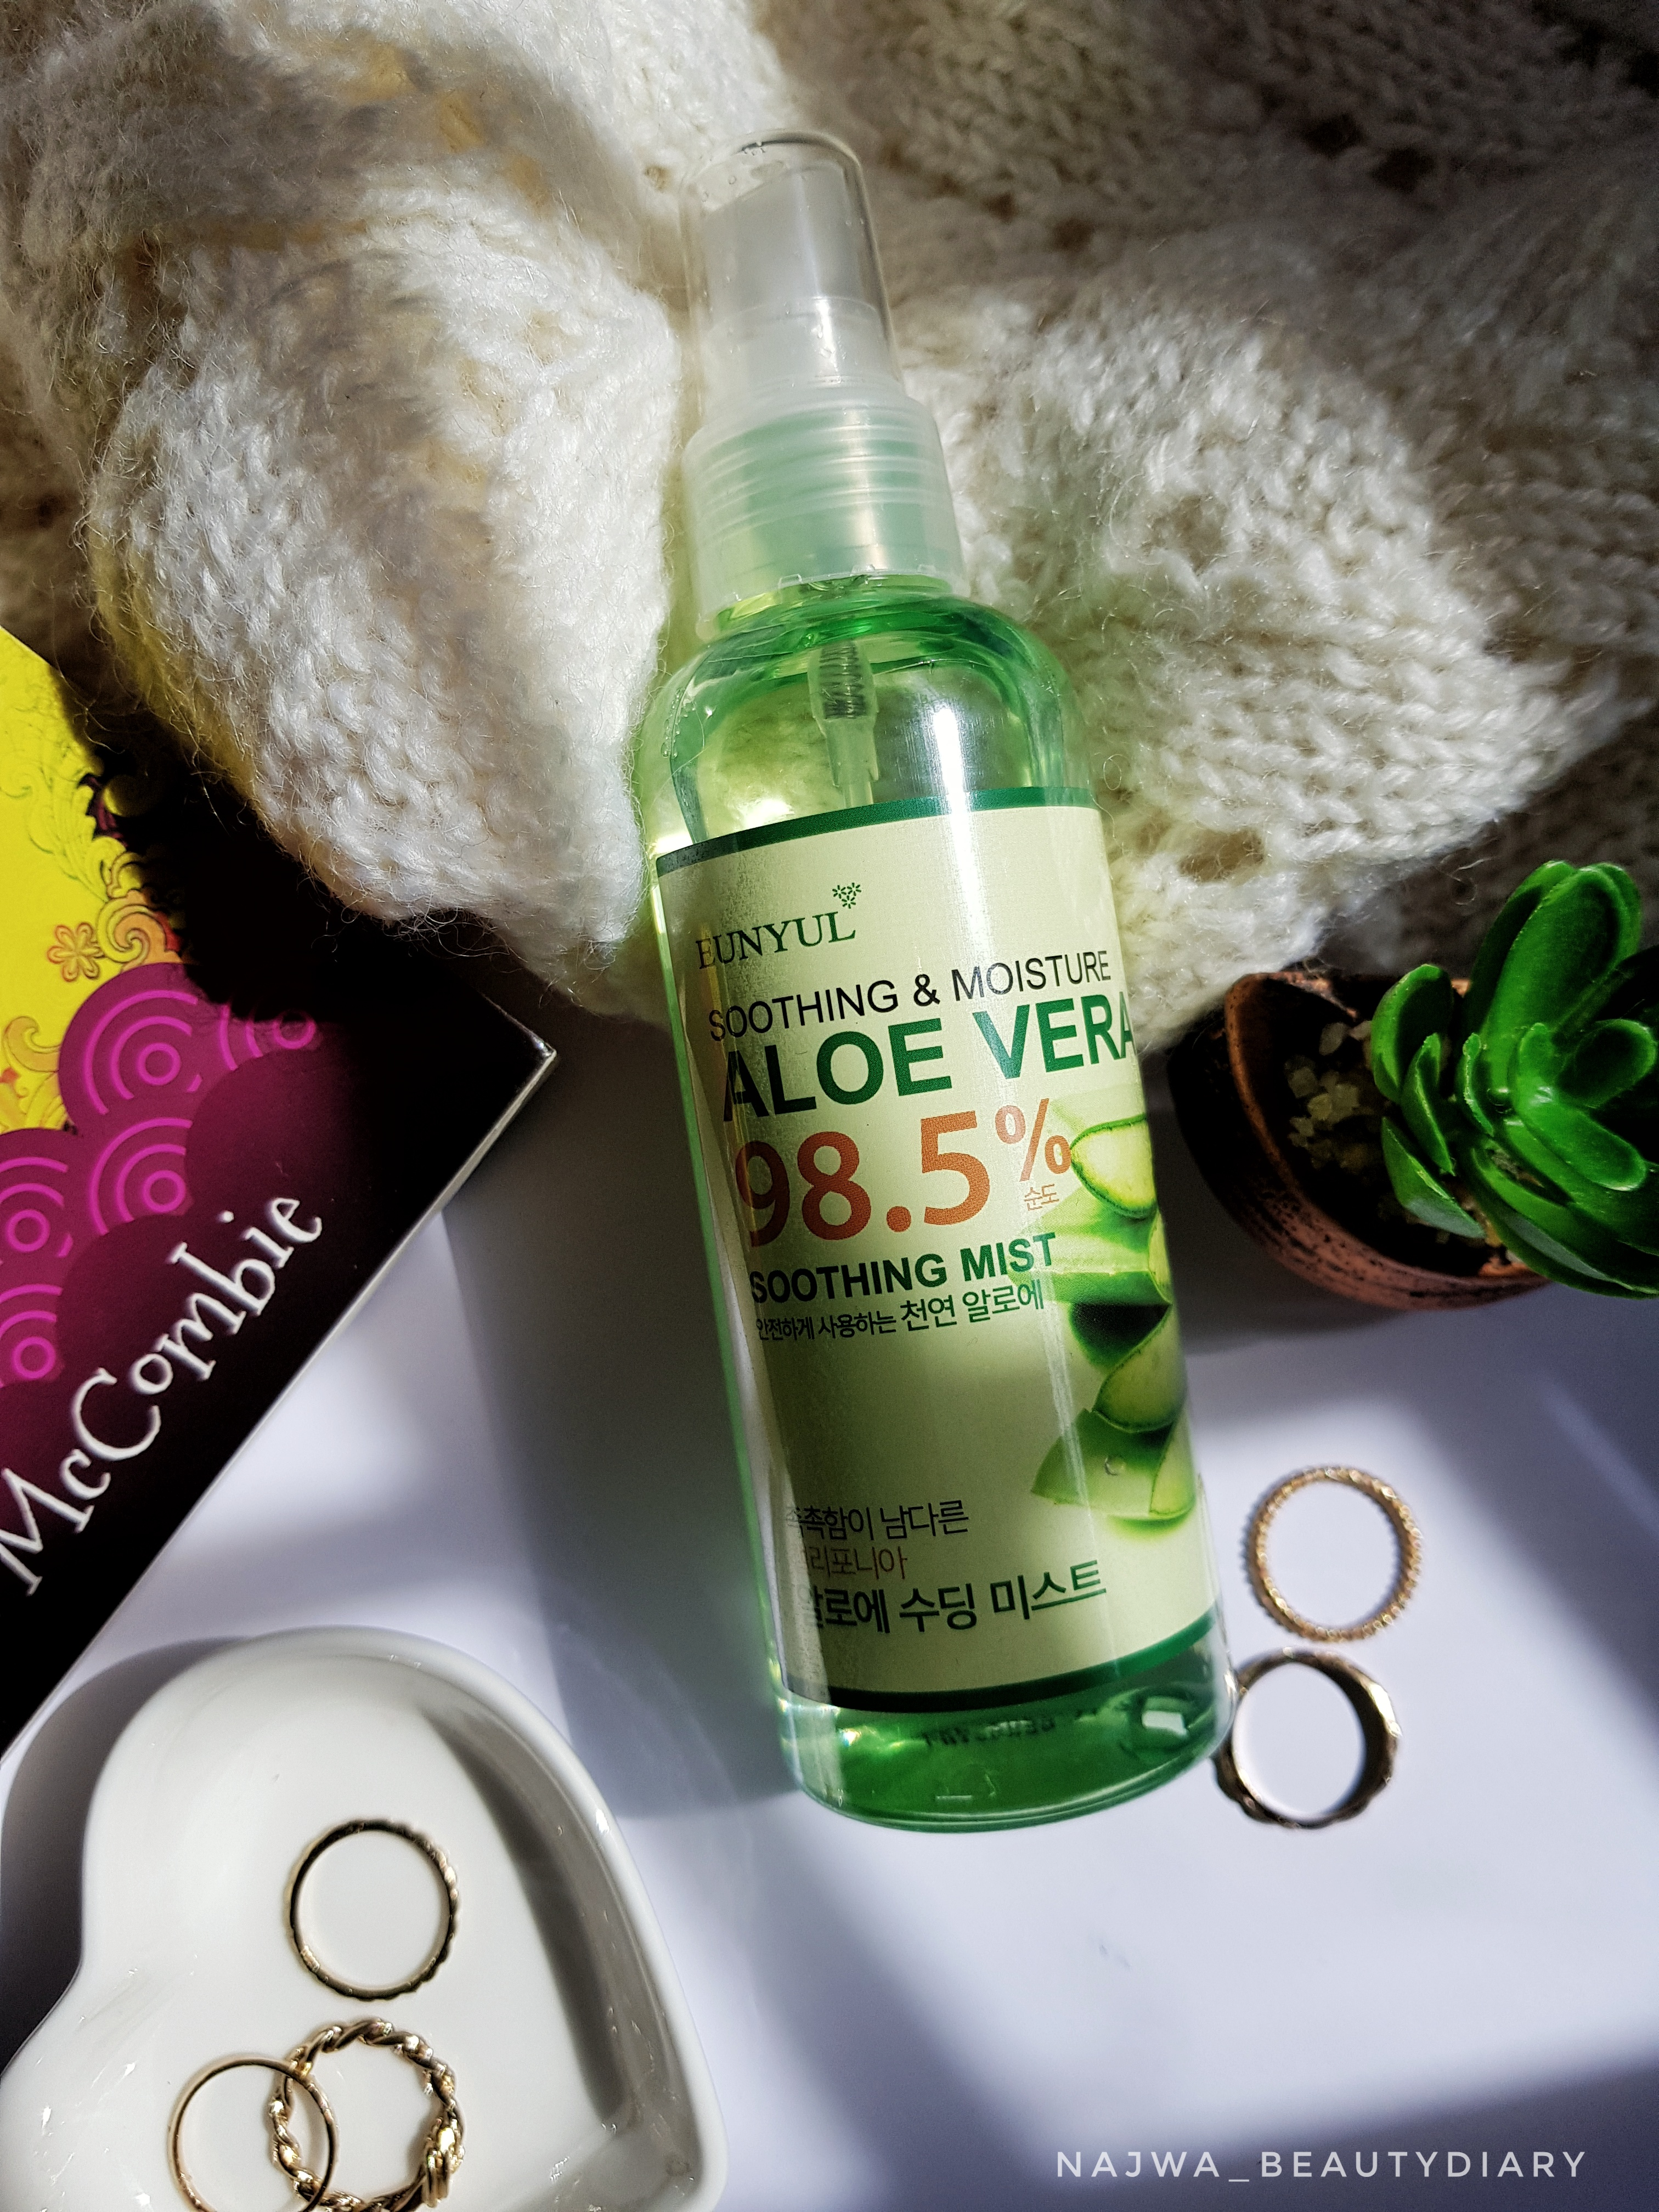 REVIEW | Eunyul Aloe Vera Soothing Mist 98.5%